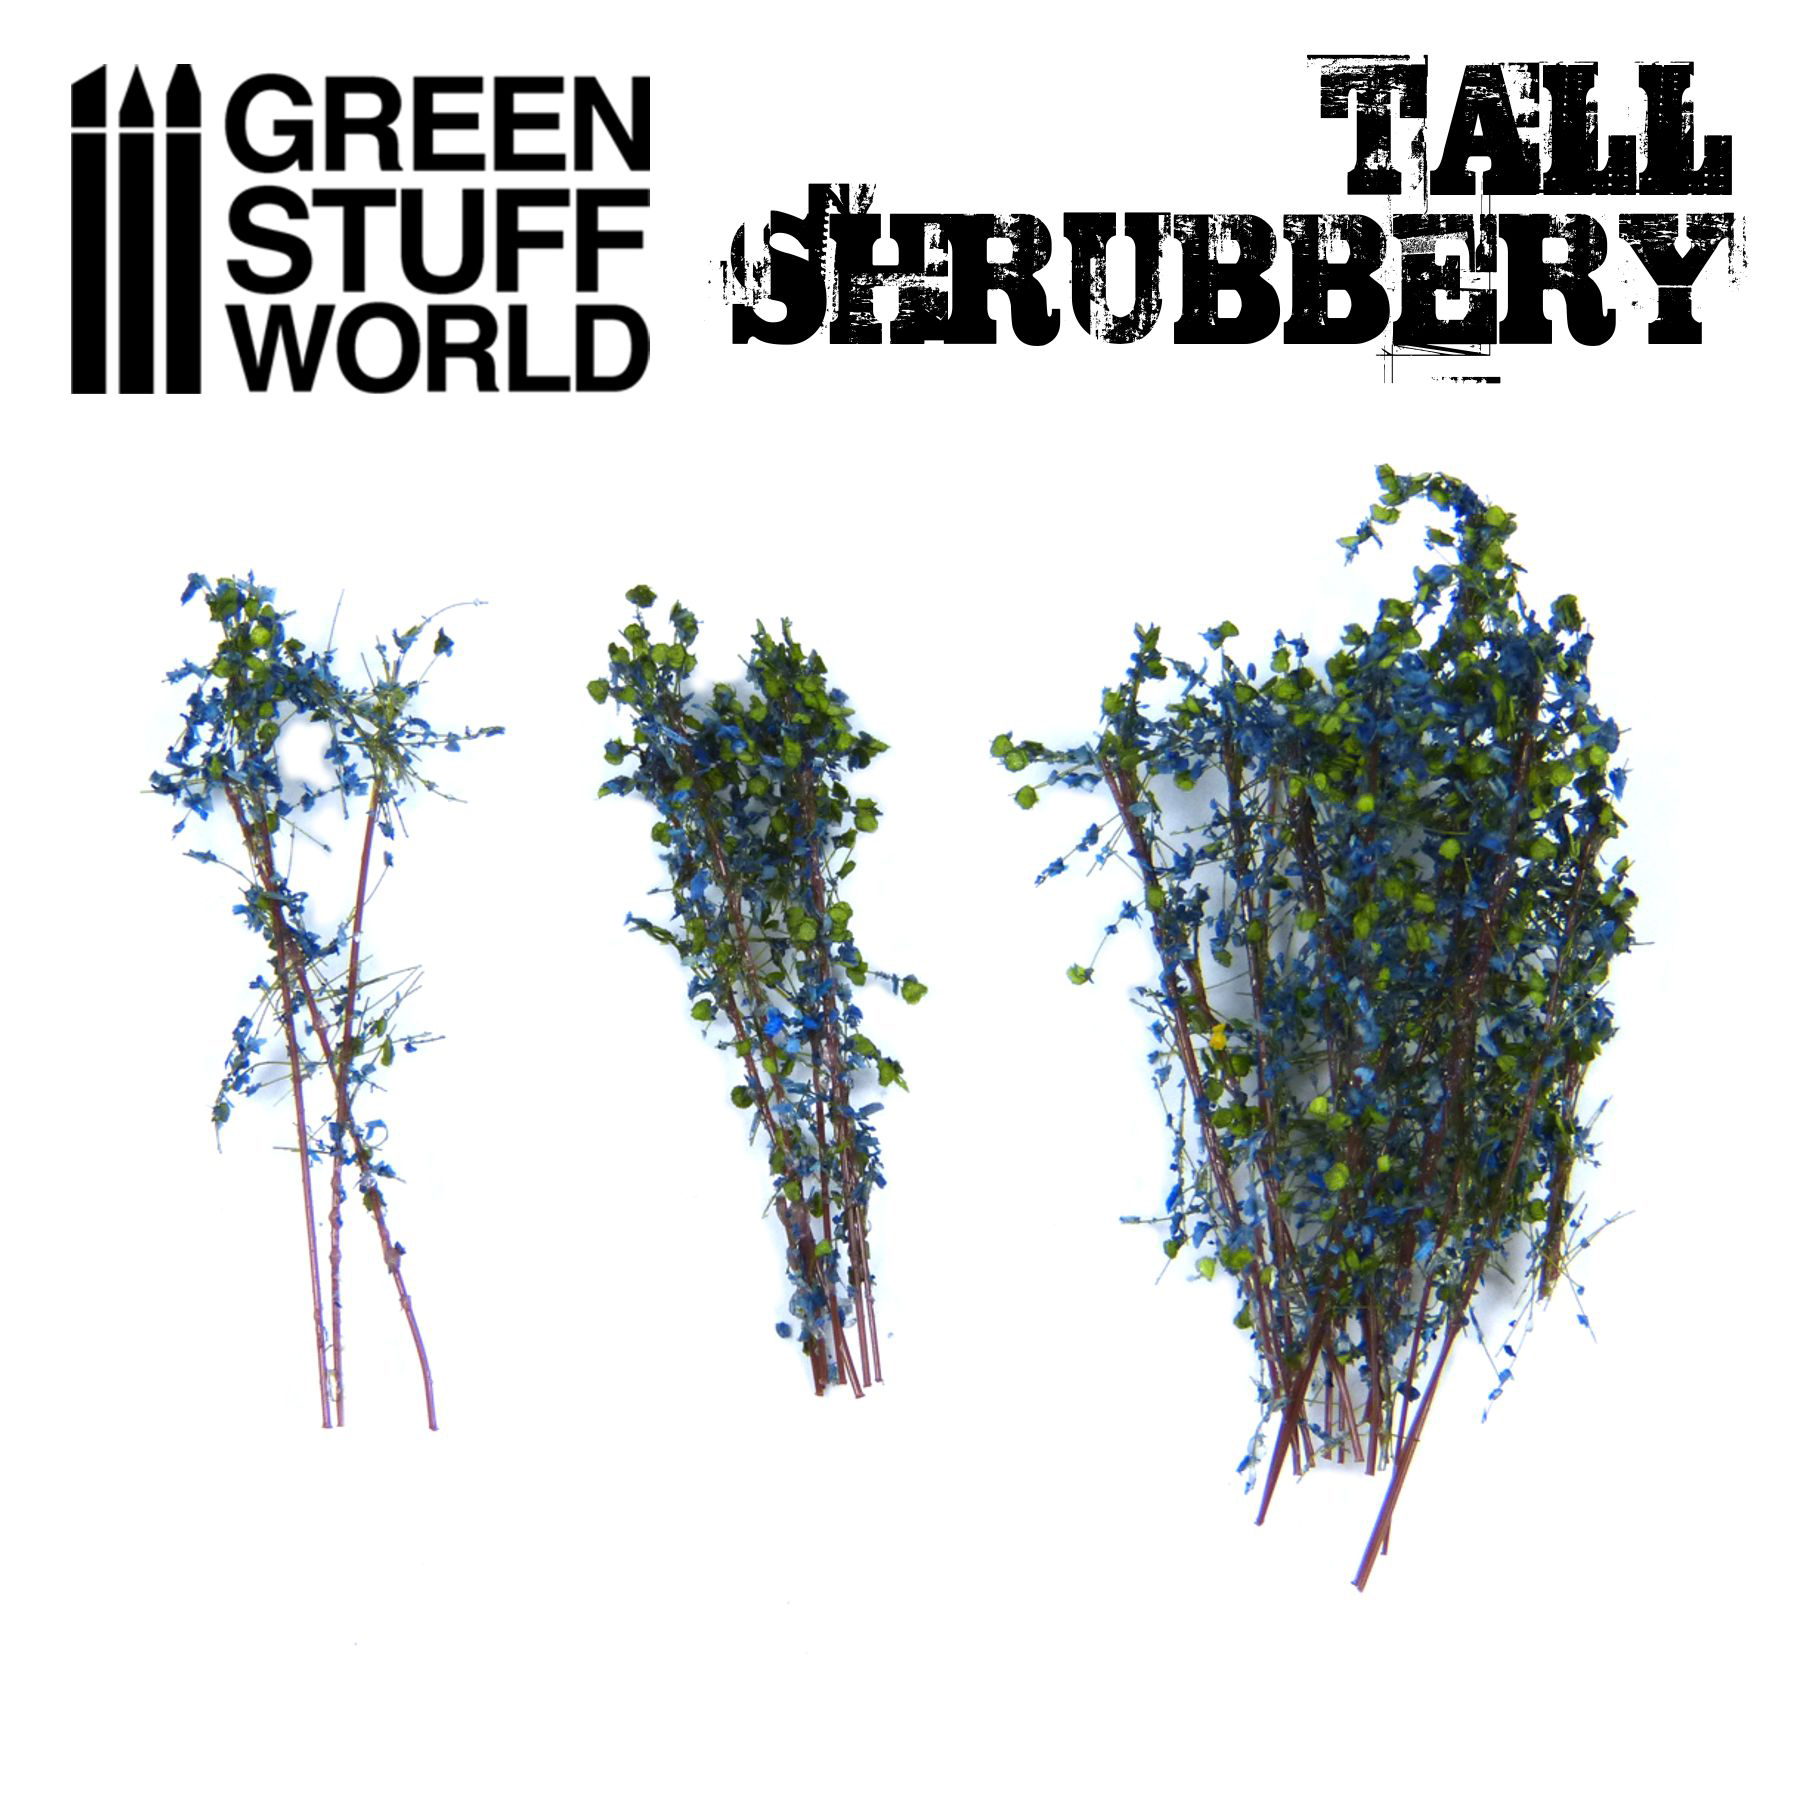 tall-shrubbery-example